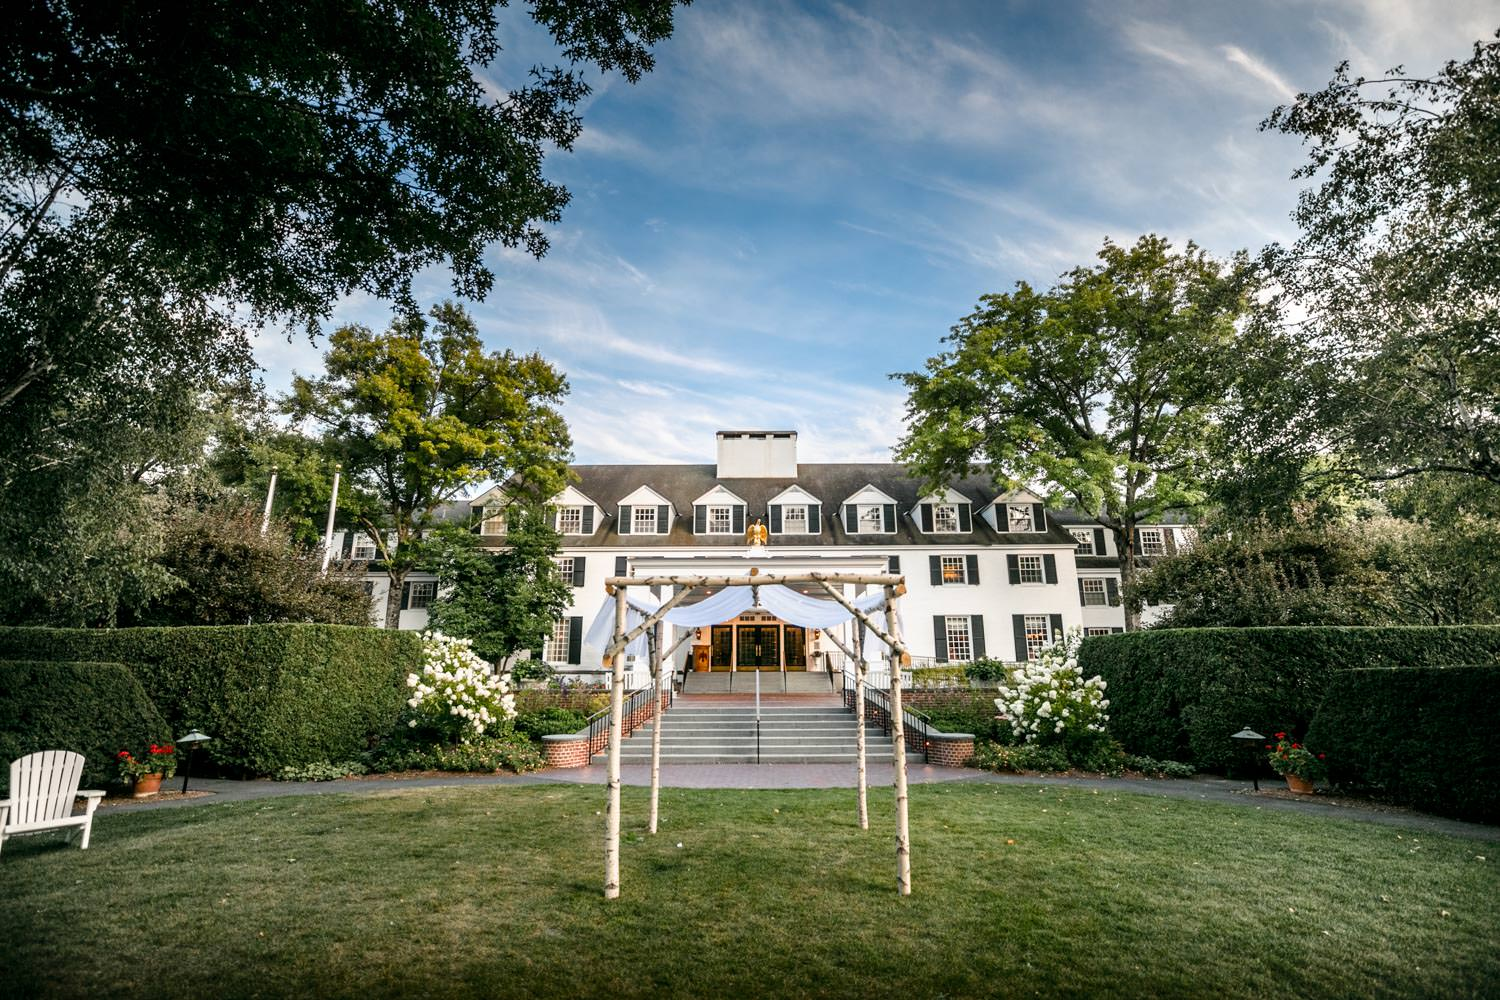 vermont birch wedding huppah with woodstock inn in the background